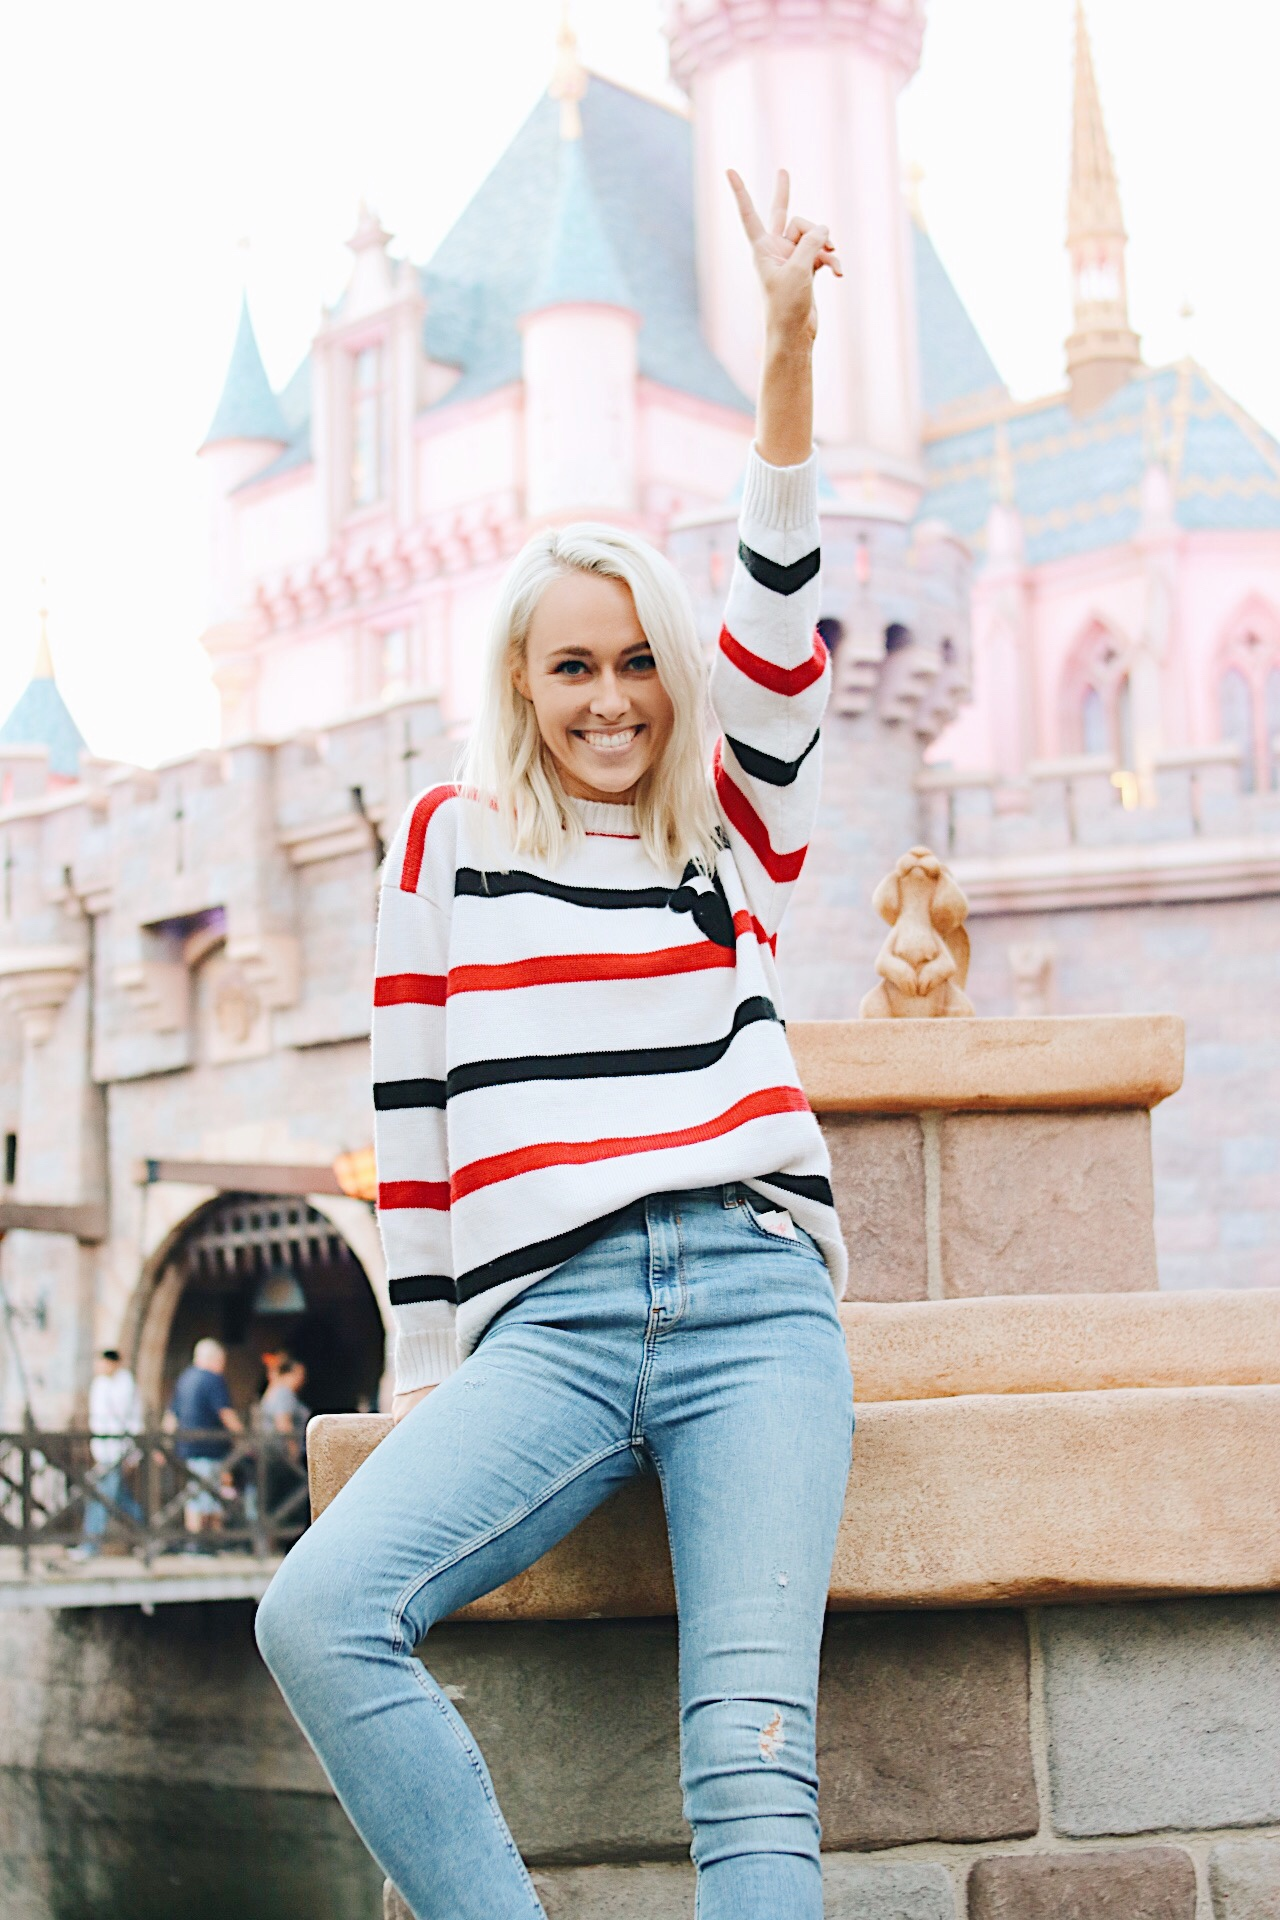 most instagram worthy spots at disneyland -